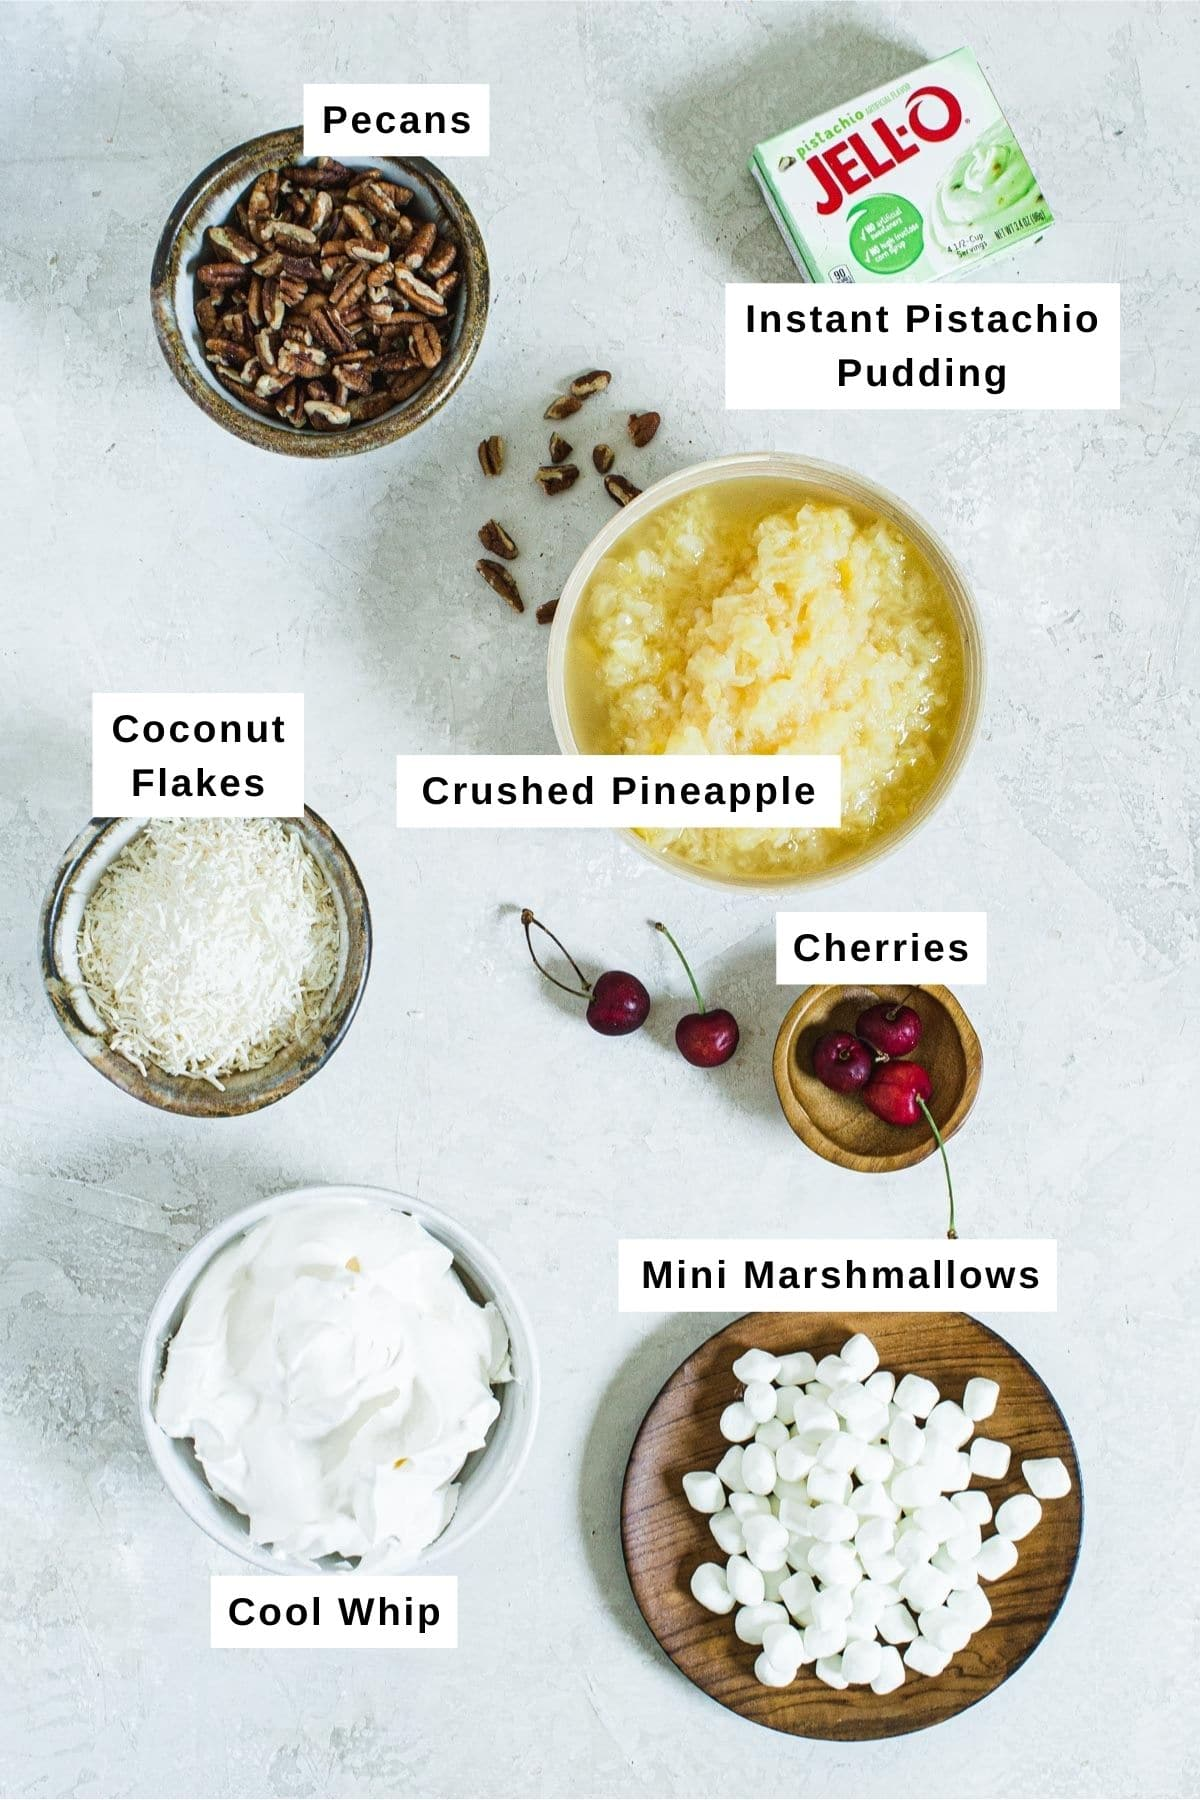 Pistachio pudding salad ingredients in different bowls.